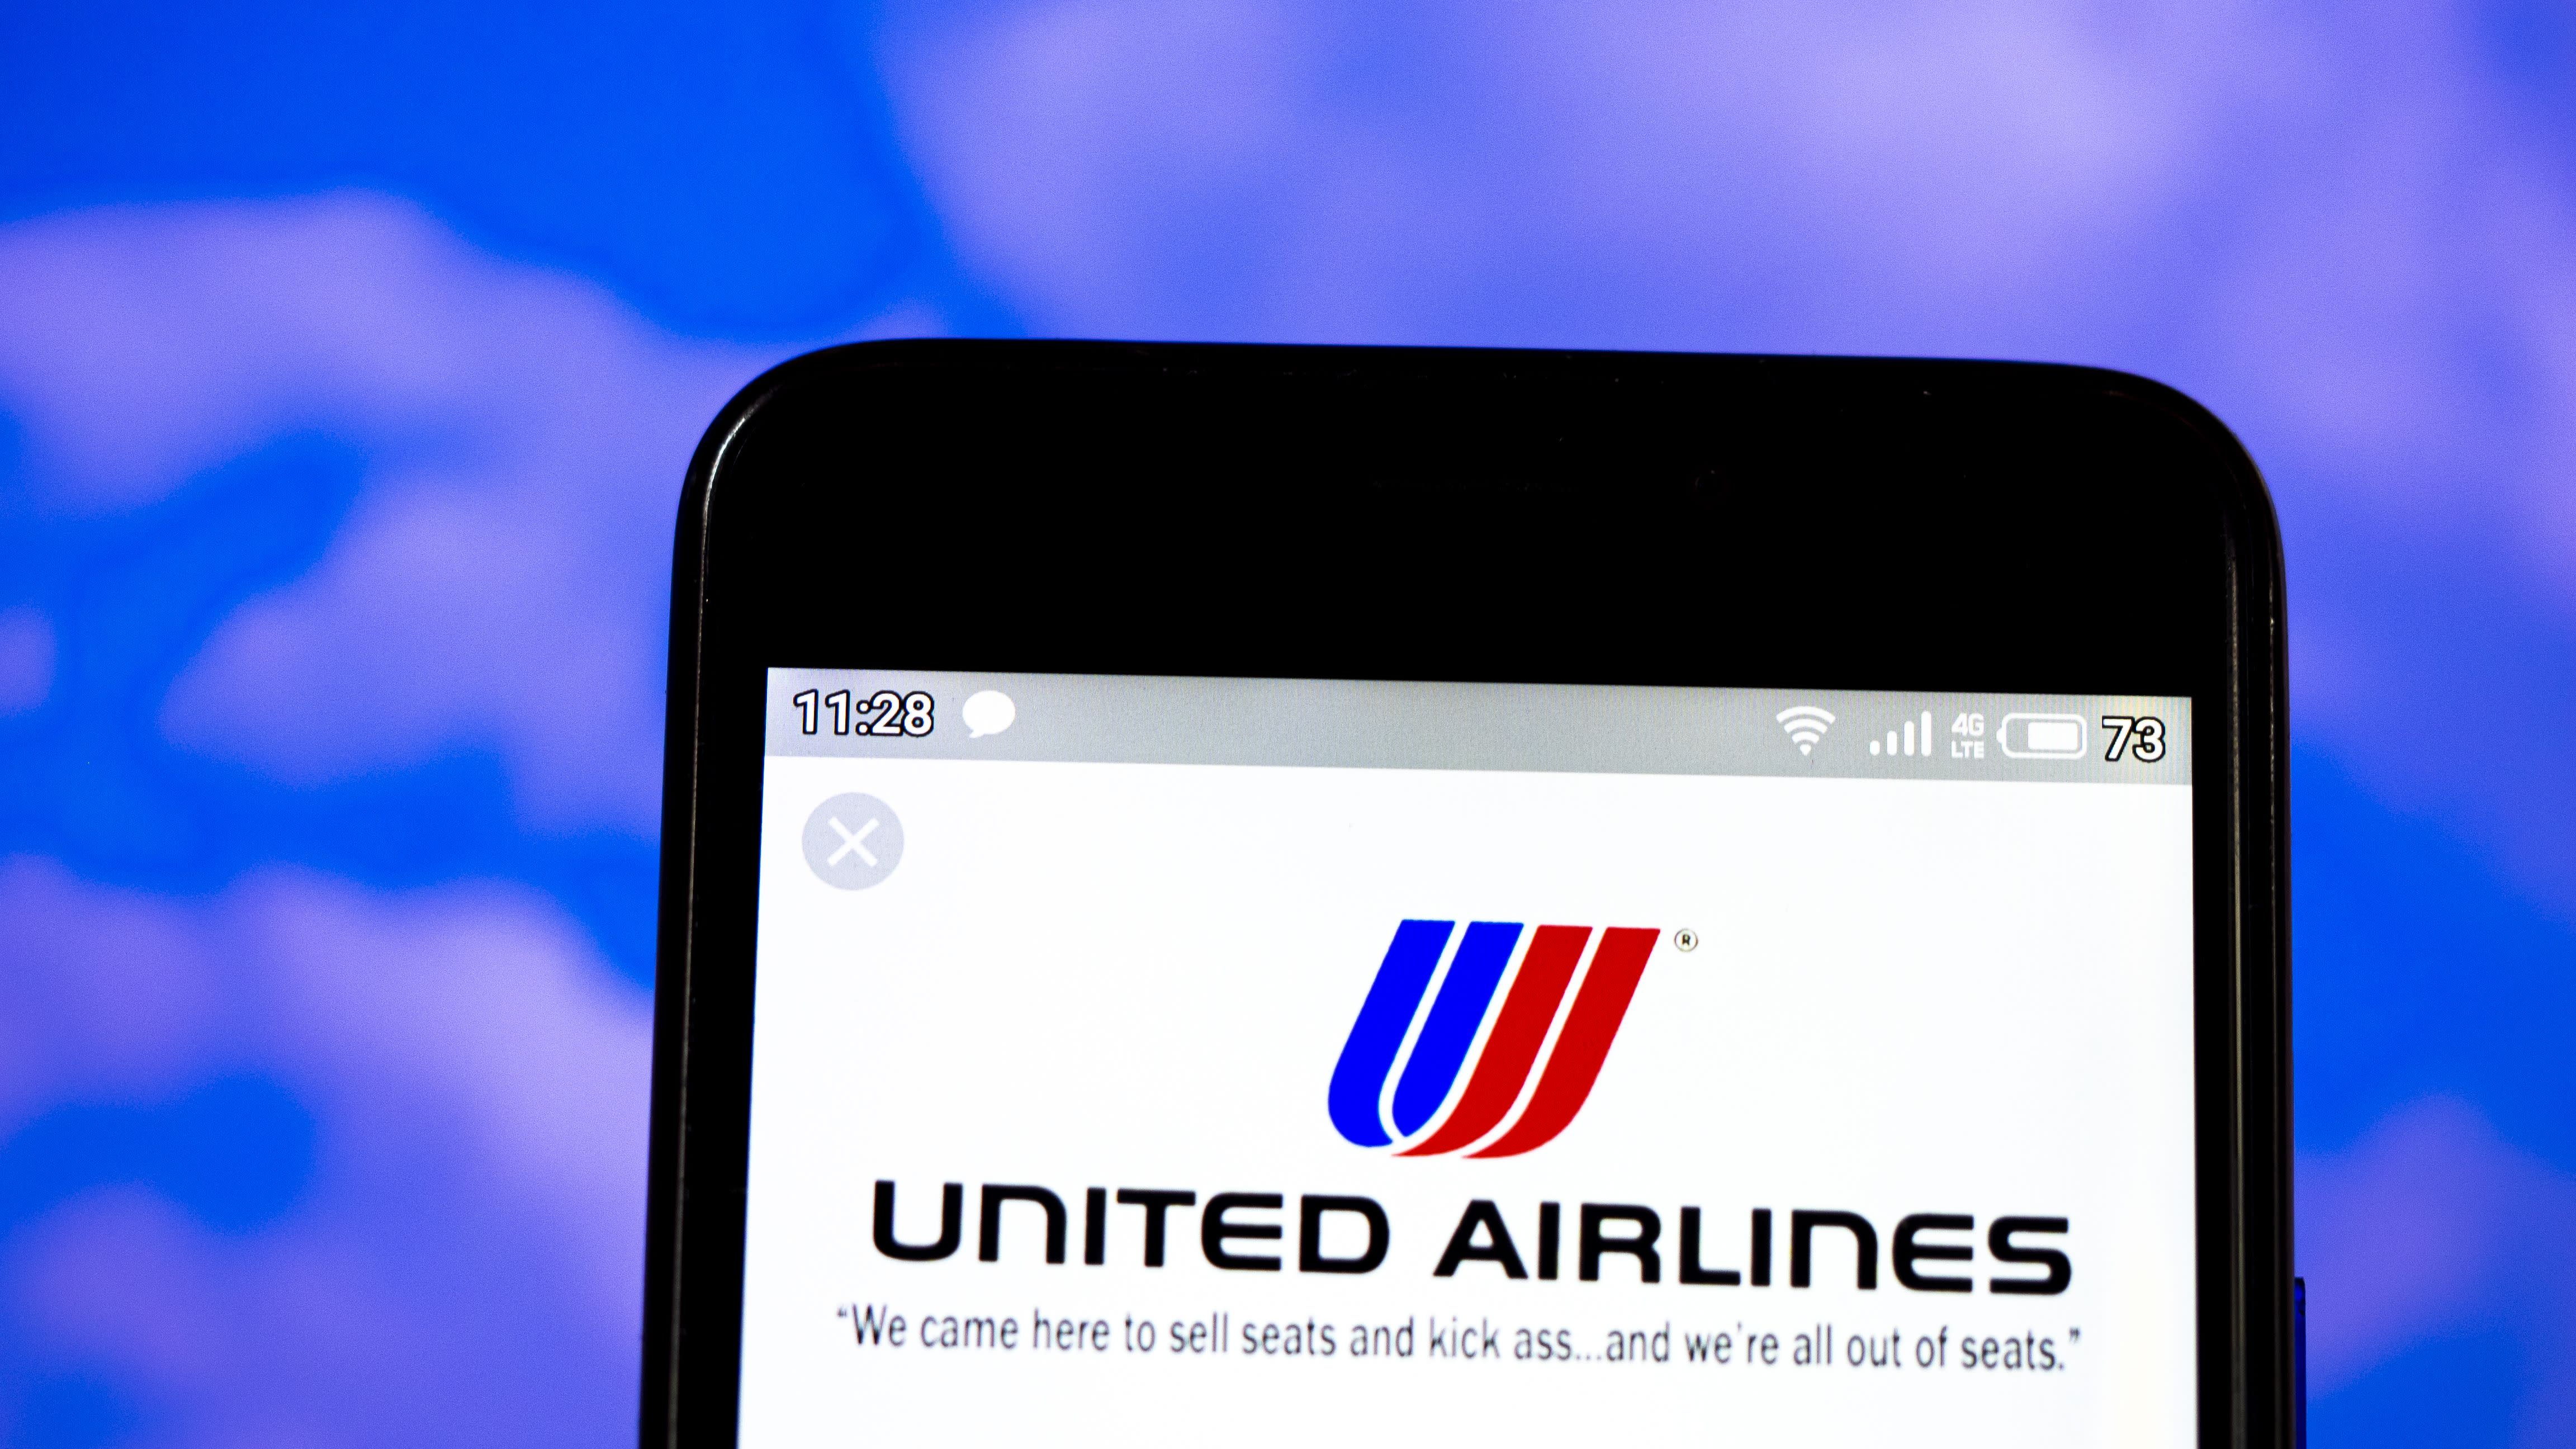 News post image: United Airlines reducing U.S. flights by 10% in April